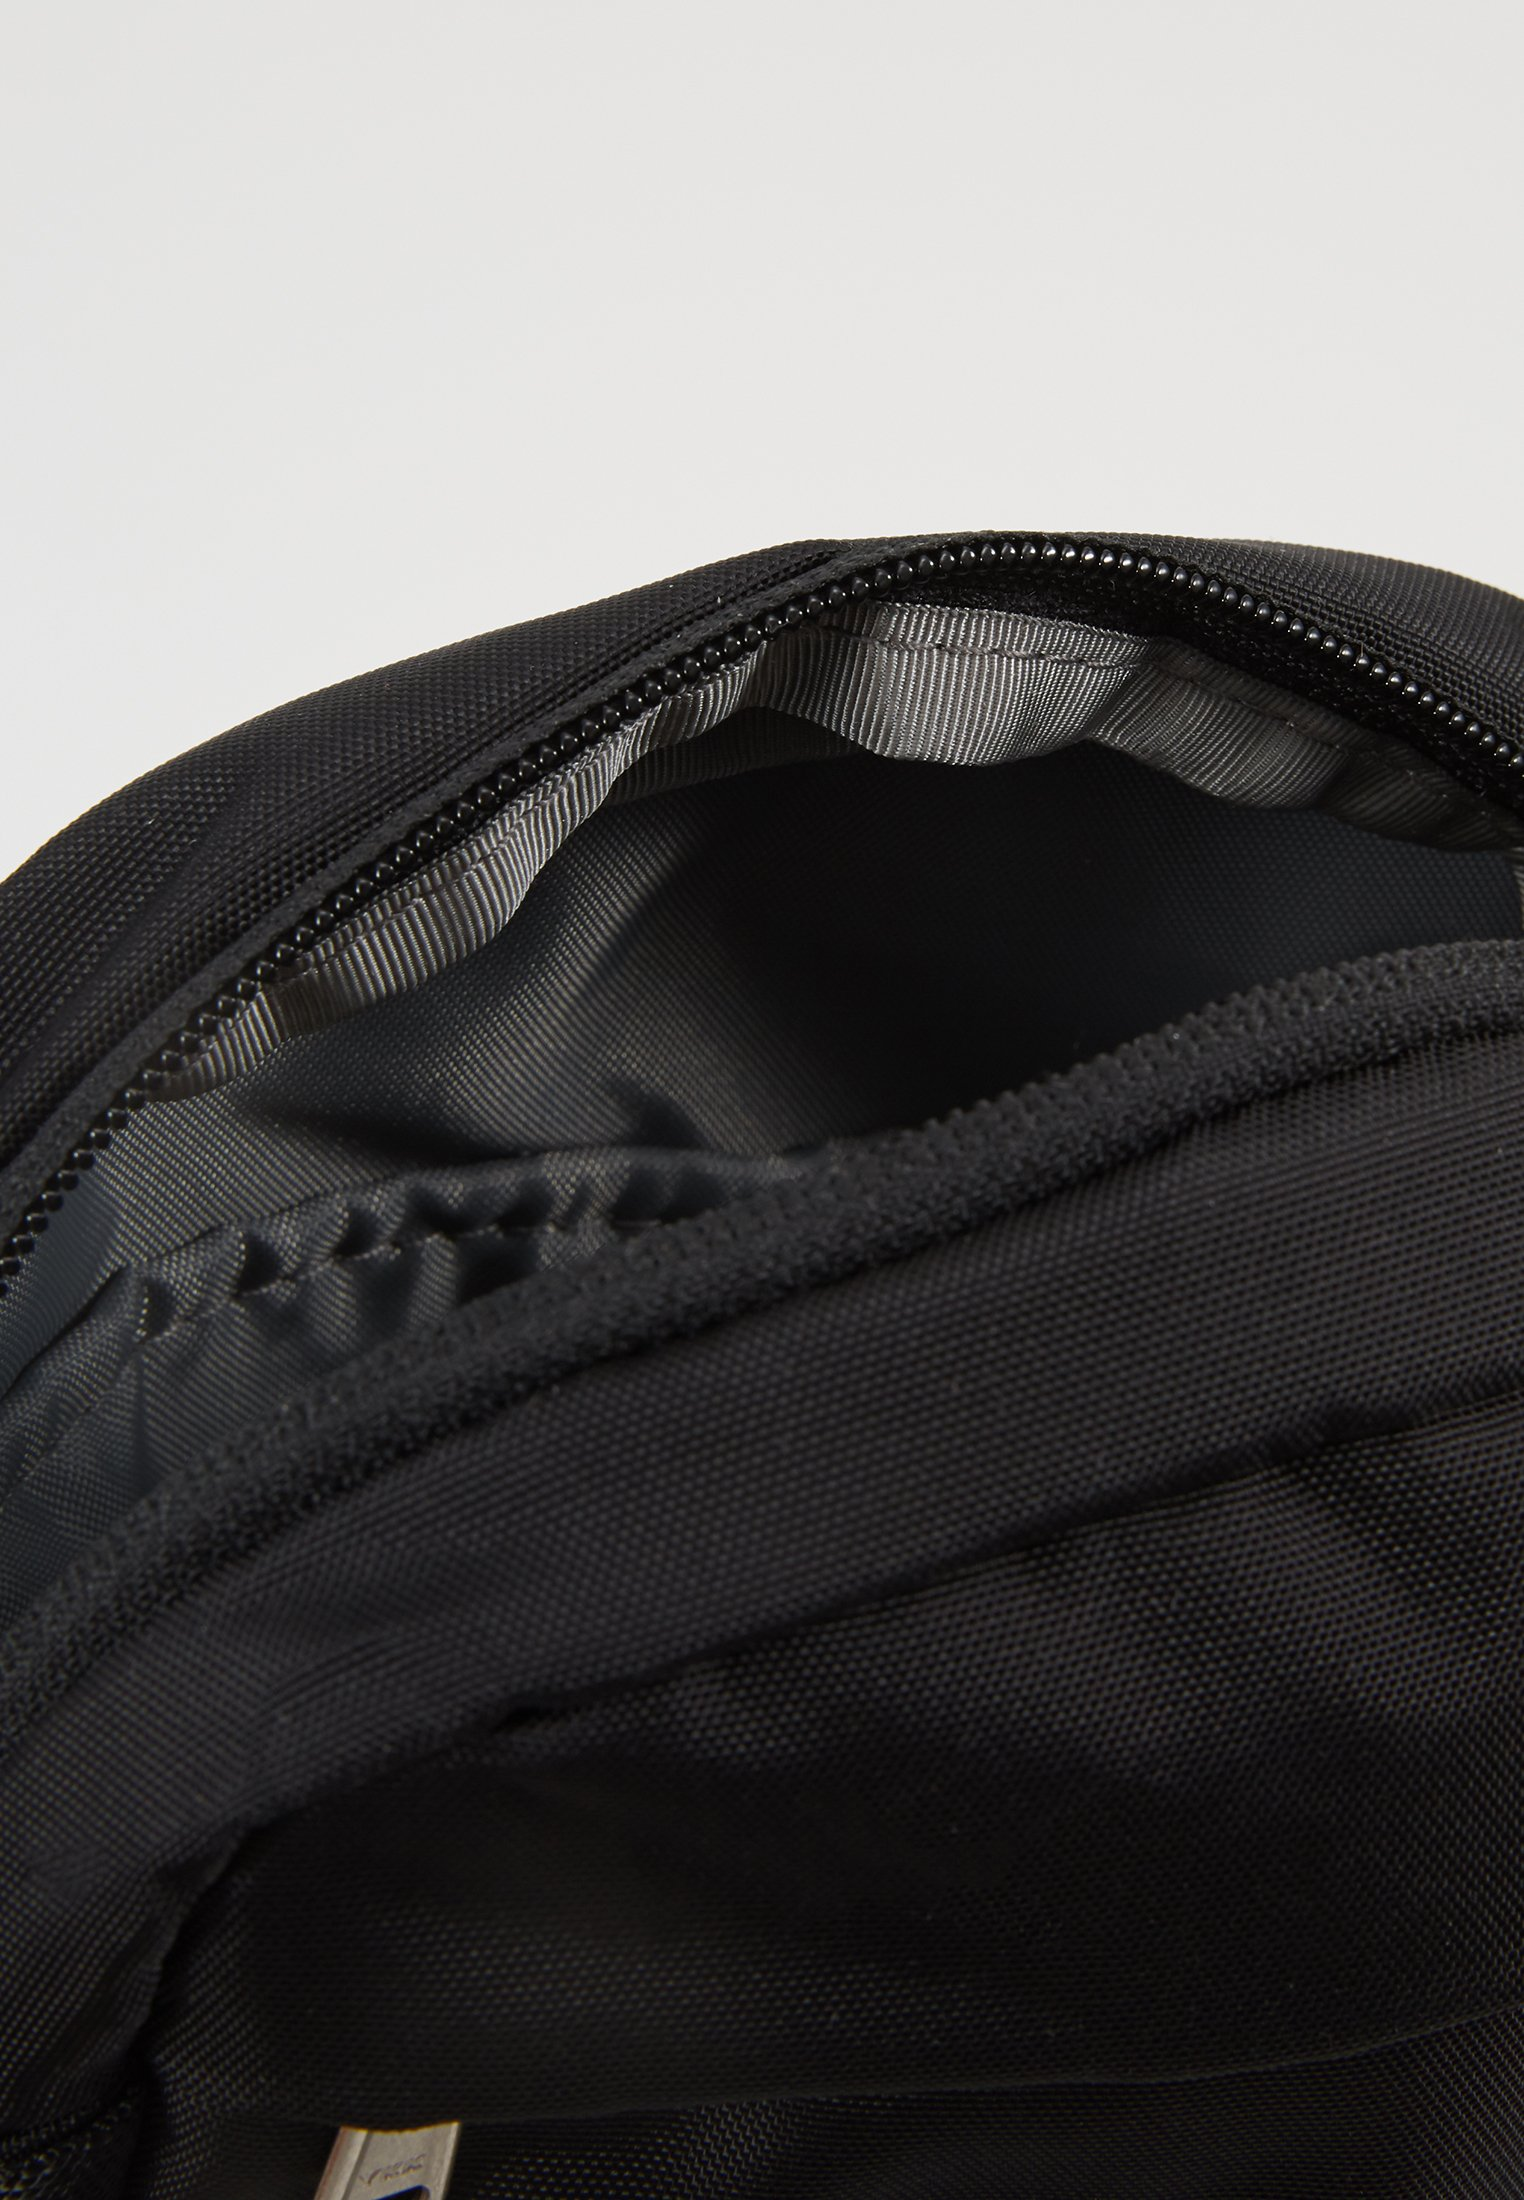 North The Face A Tracolla BagBorsa Shoulder white Black XN8OnP0kw